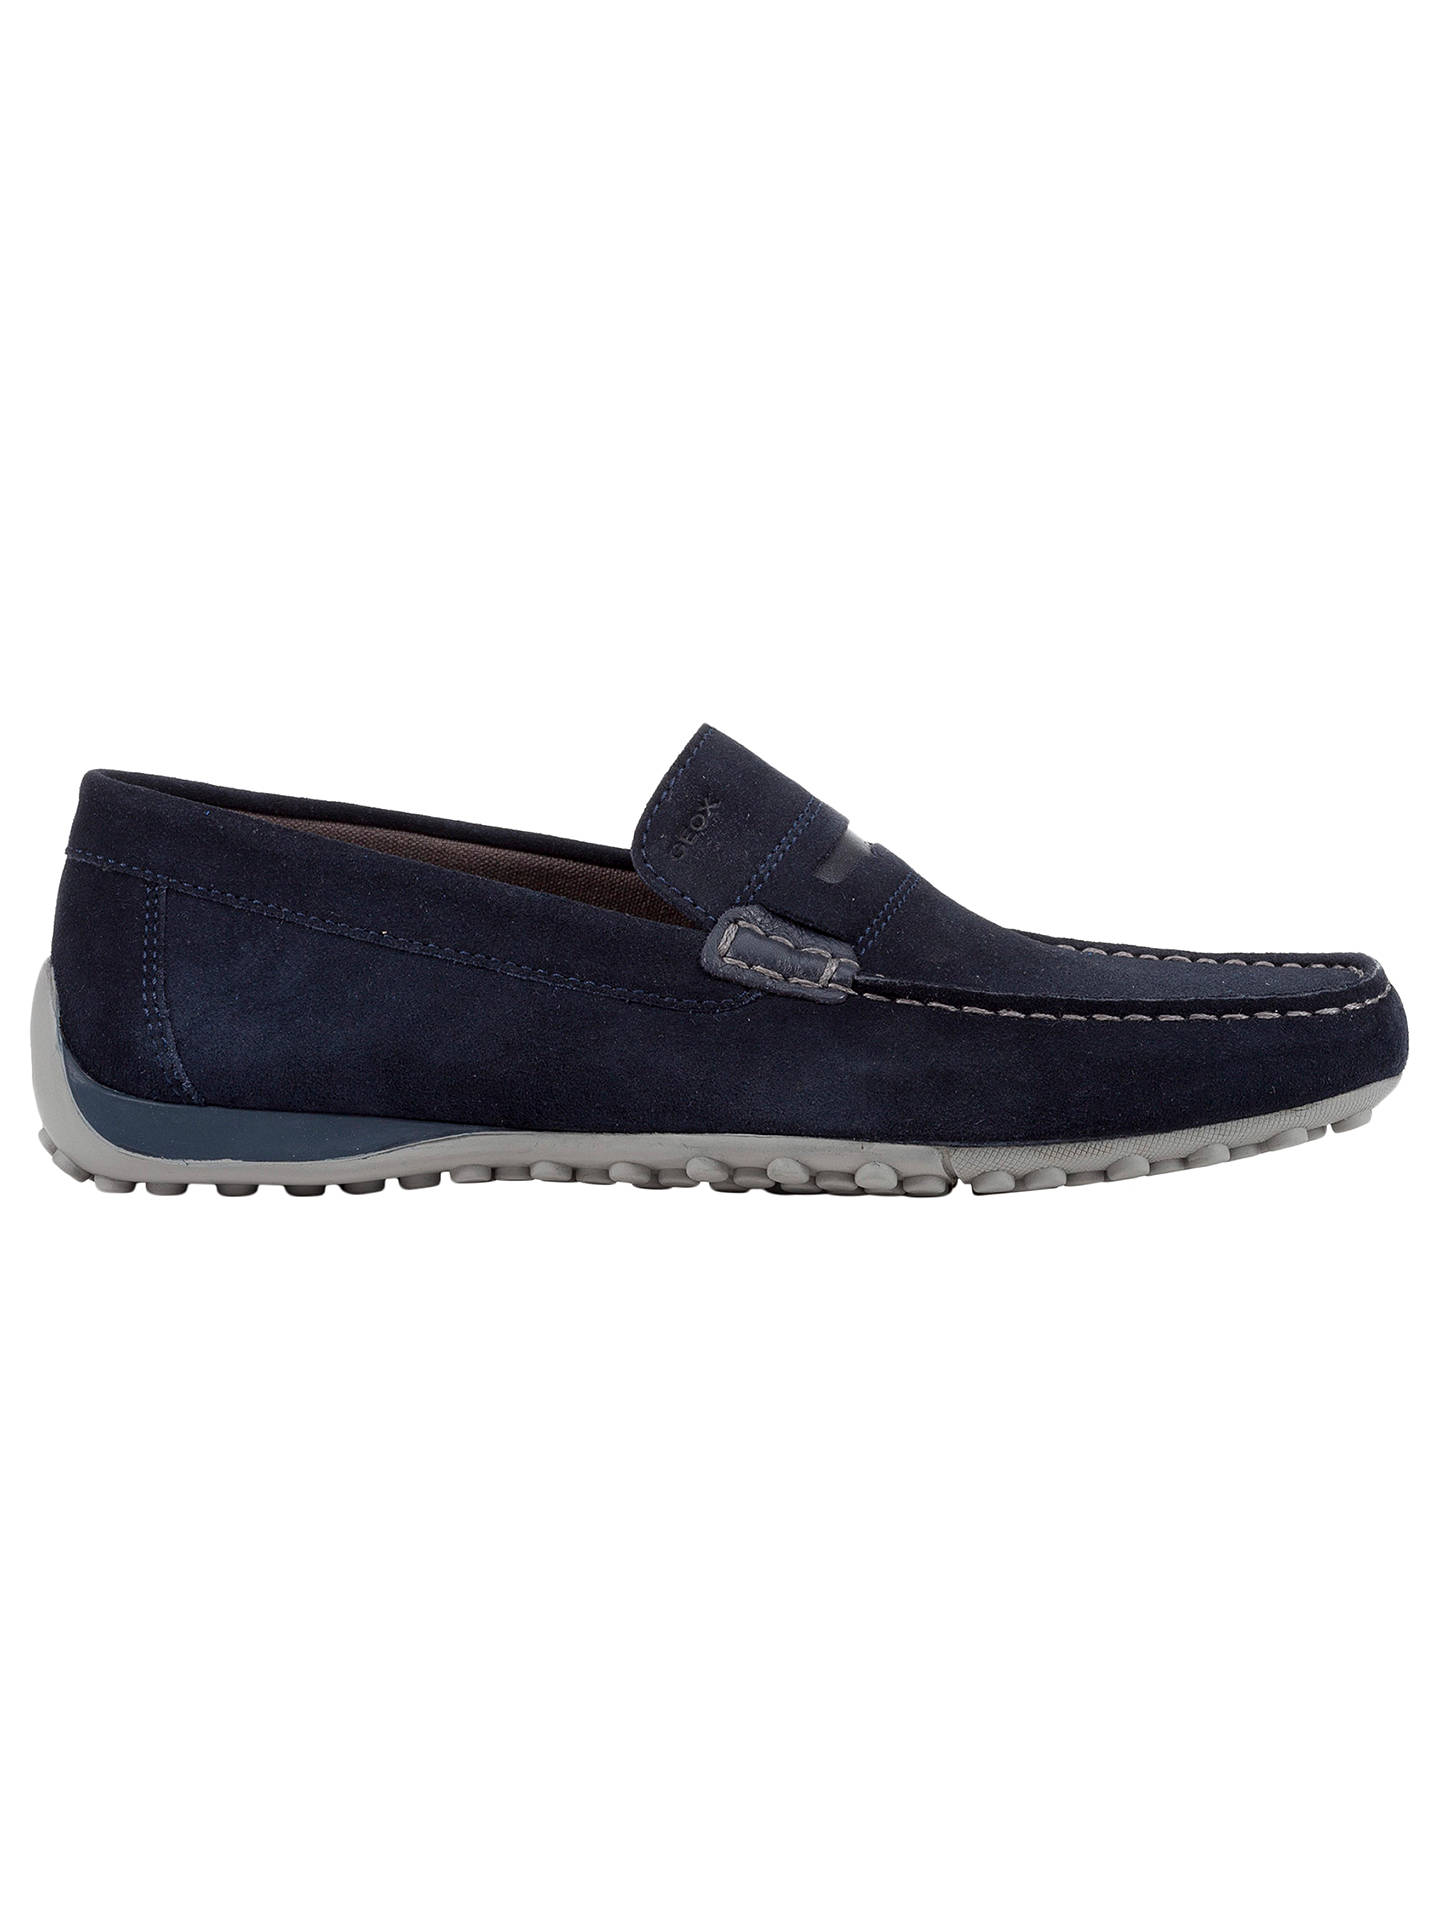 edbb03f8c7cf5 Buy Geox Snake Leather Moccasins, Navy, 8 Online at johnlewis.com ...